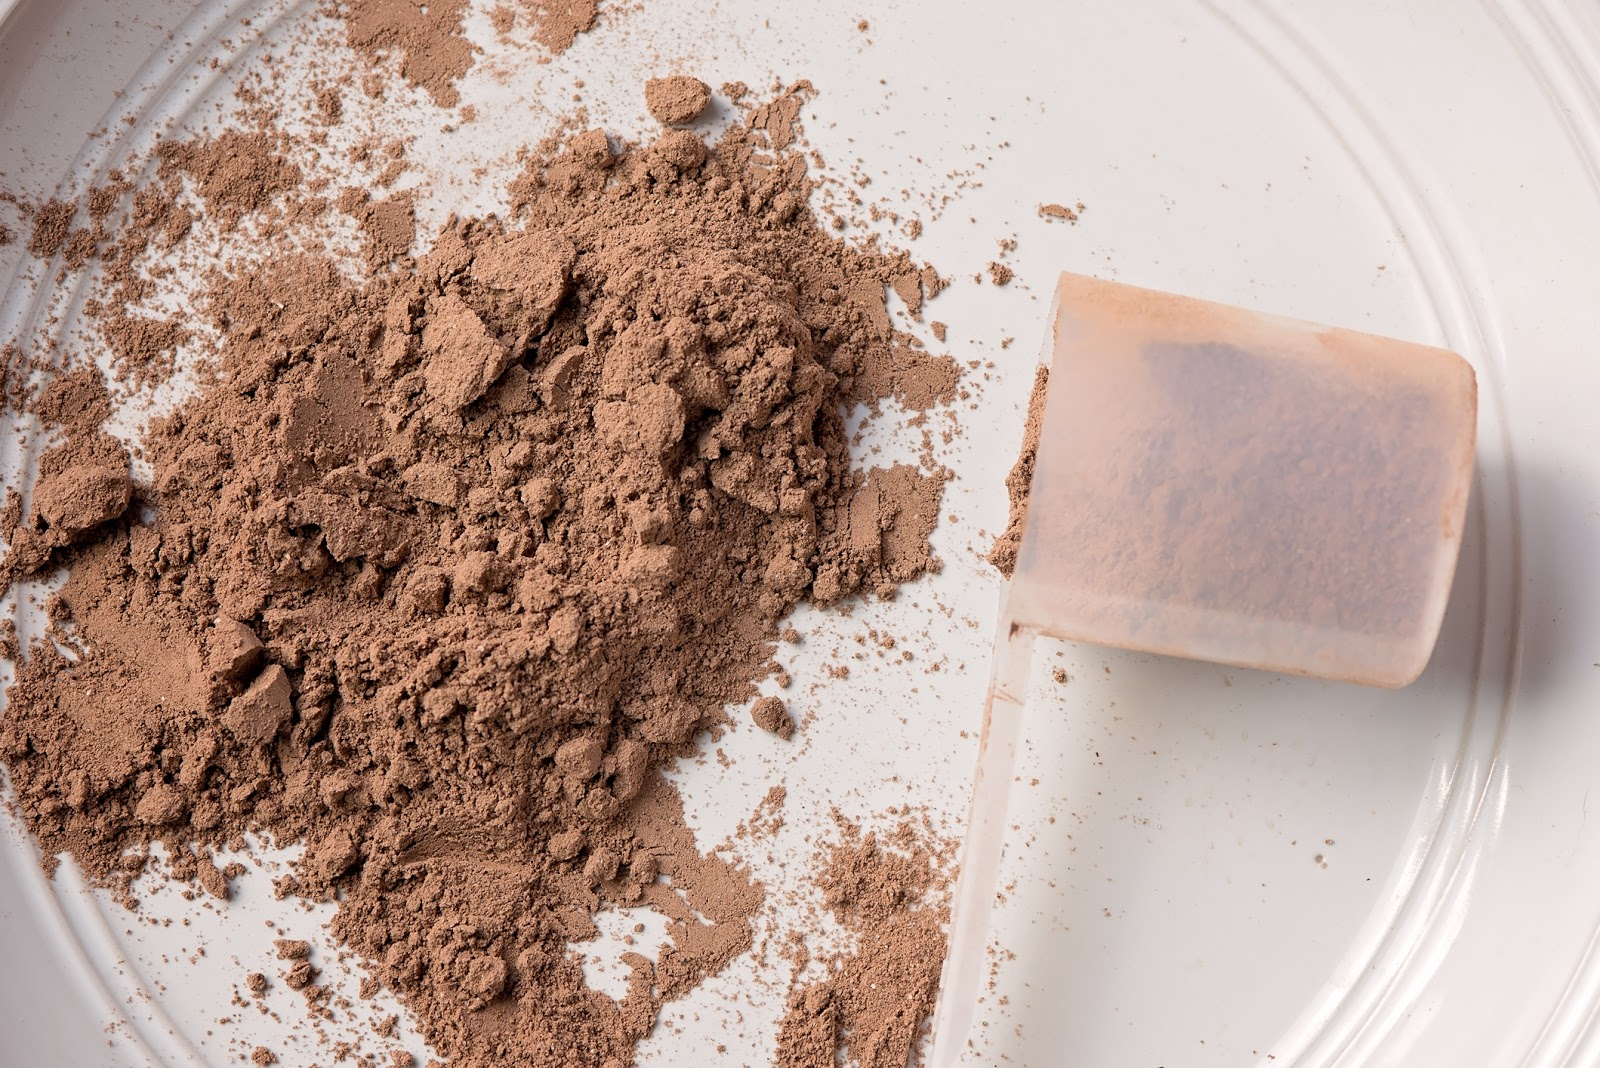 Meal replacement shake powder on a plate with scoop